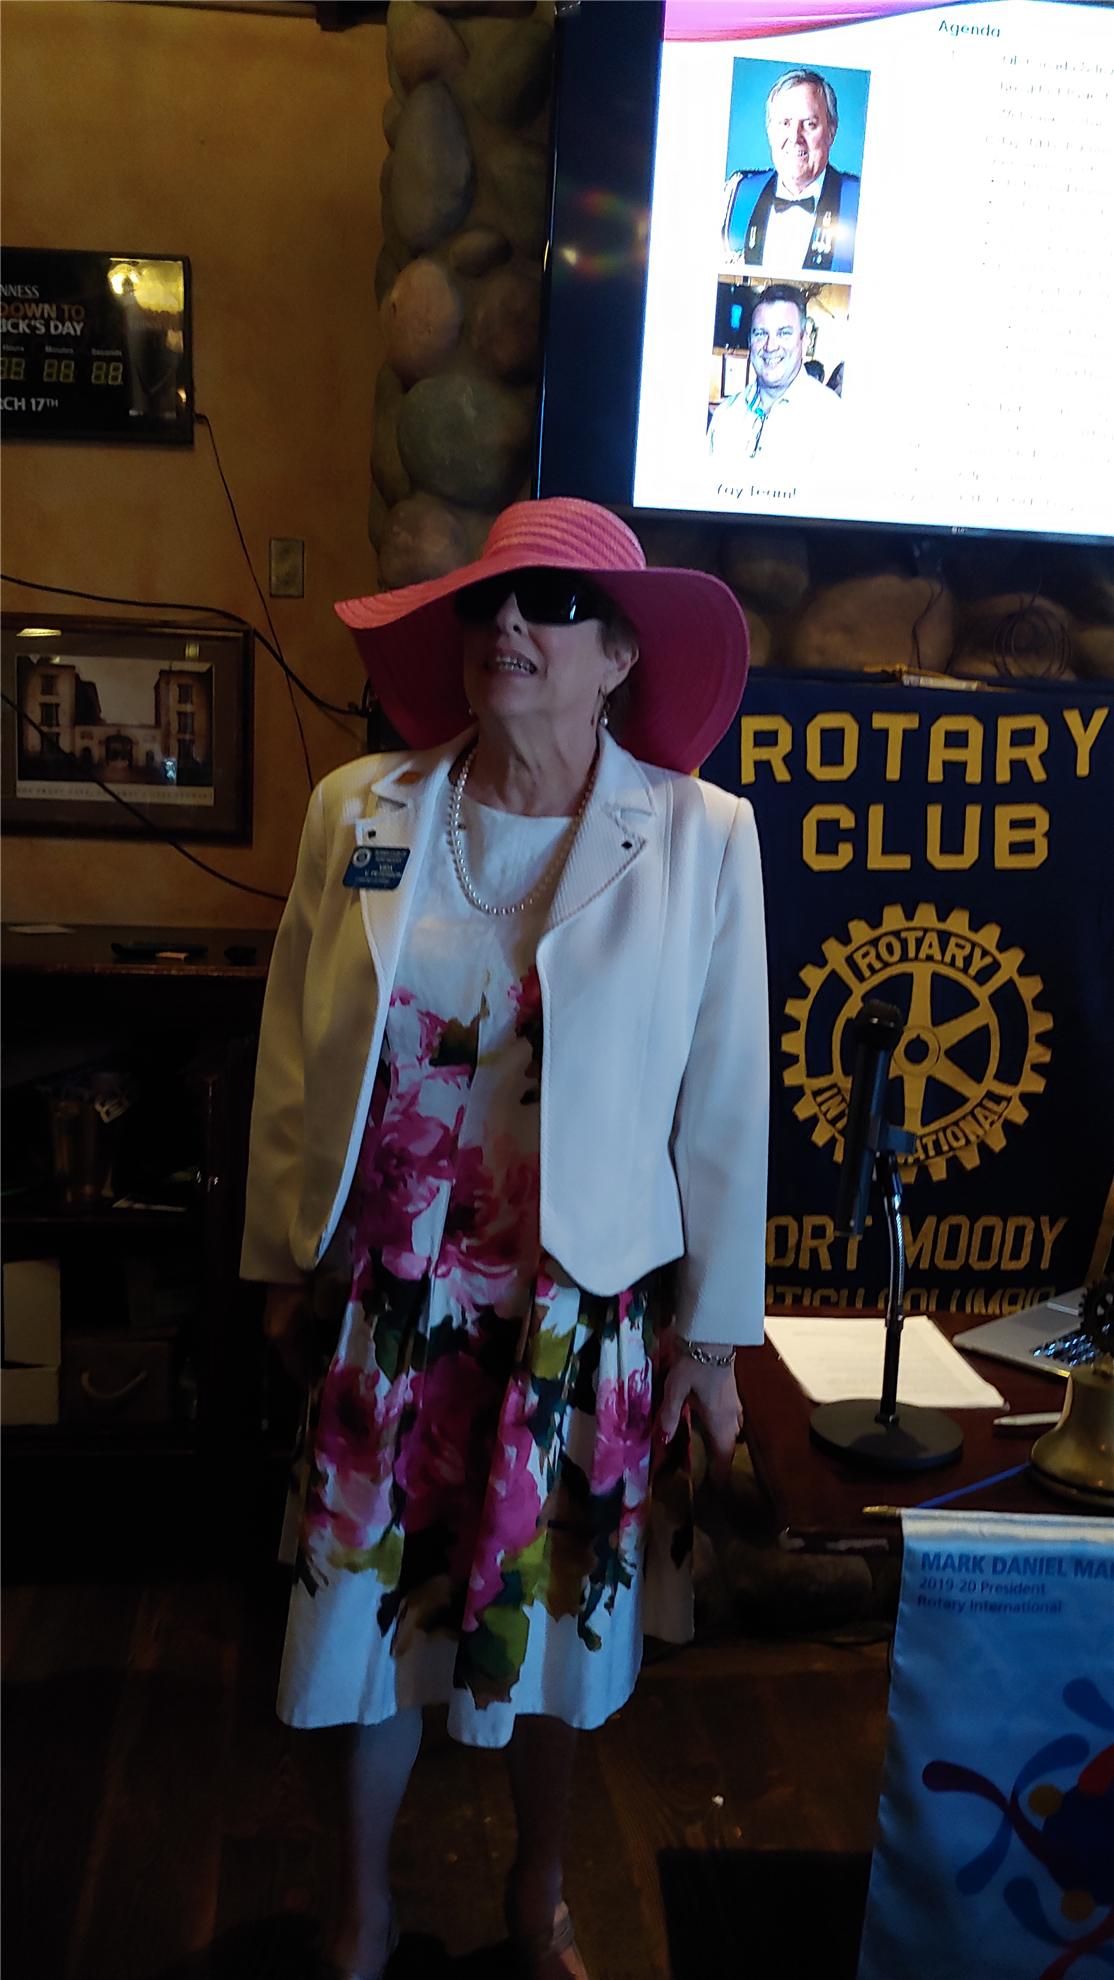 ede6c8a33 Stories | Rotary Club of Port Moody